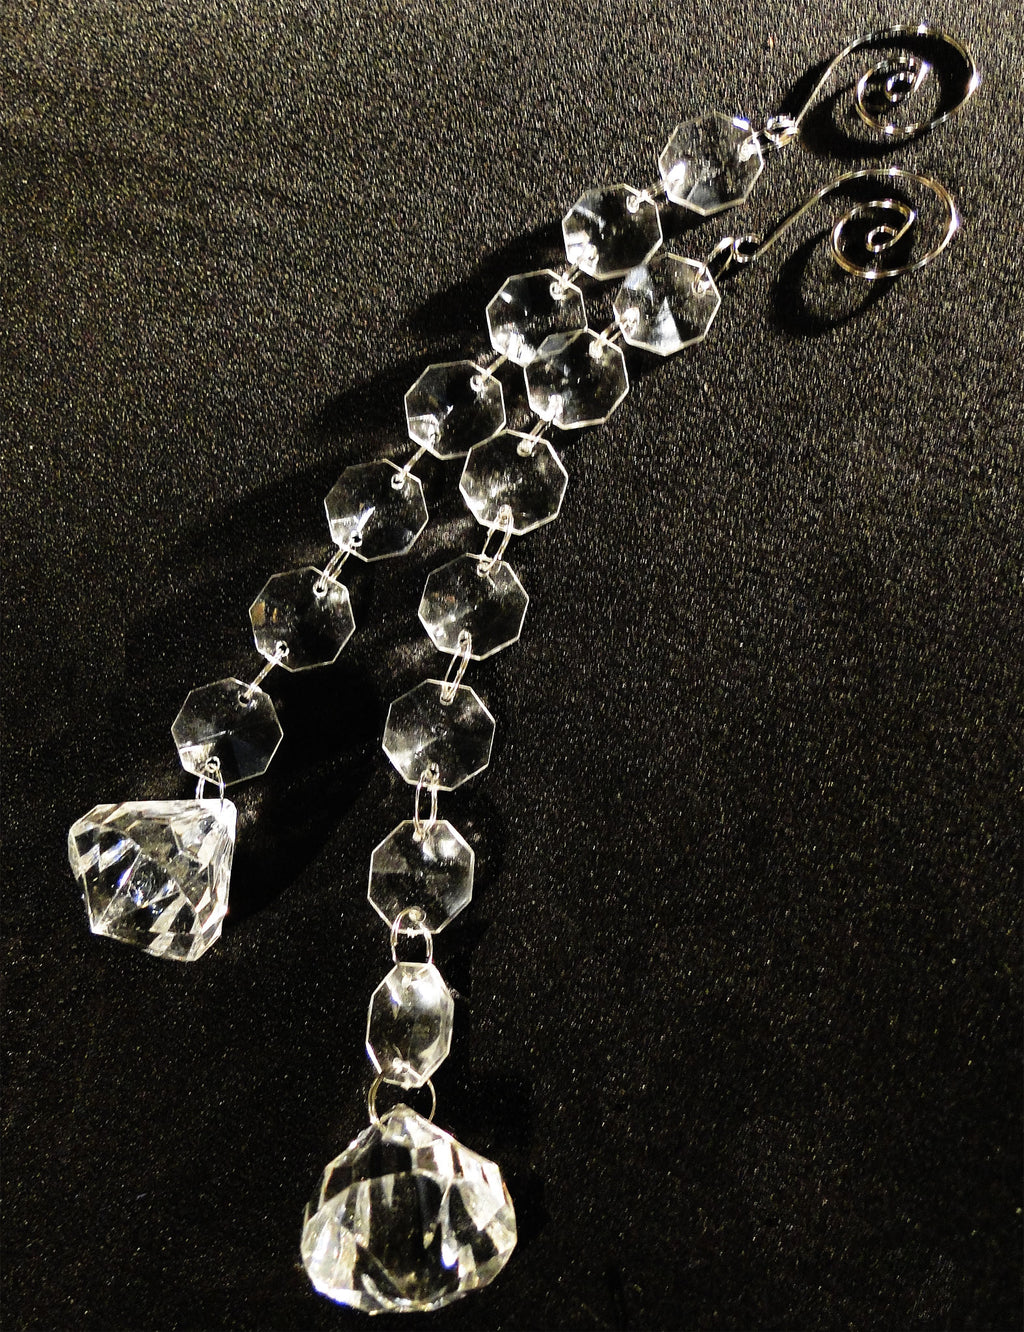 9 IN DIAMOND DROP Pendants w/ Spiral Hook ACRYLIC CLEAR BUY ONE GET ONE FREE